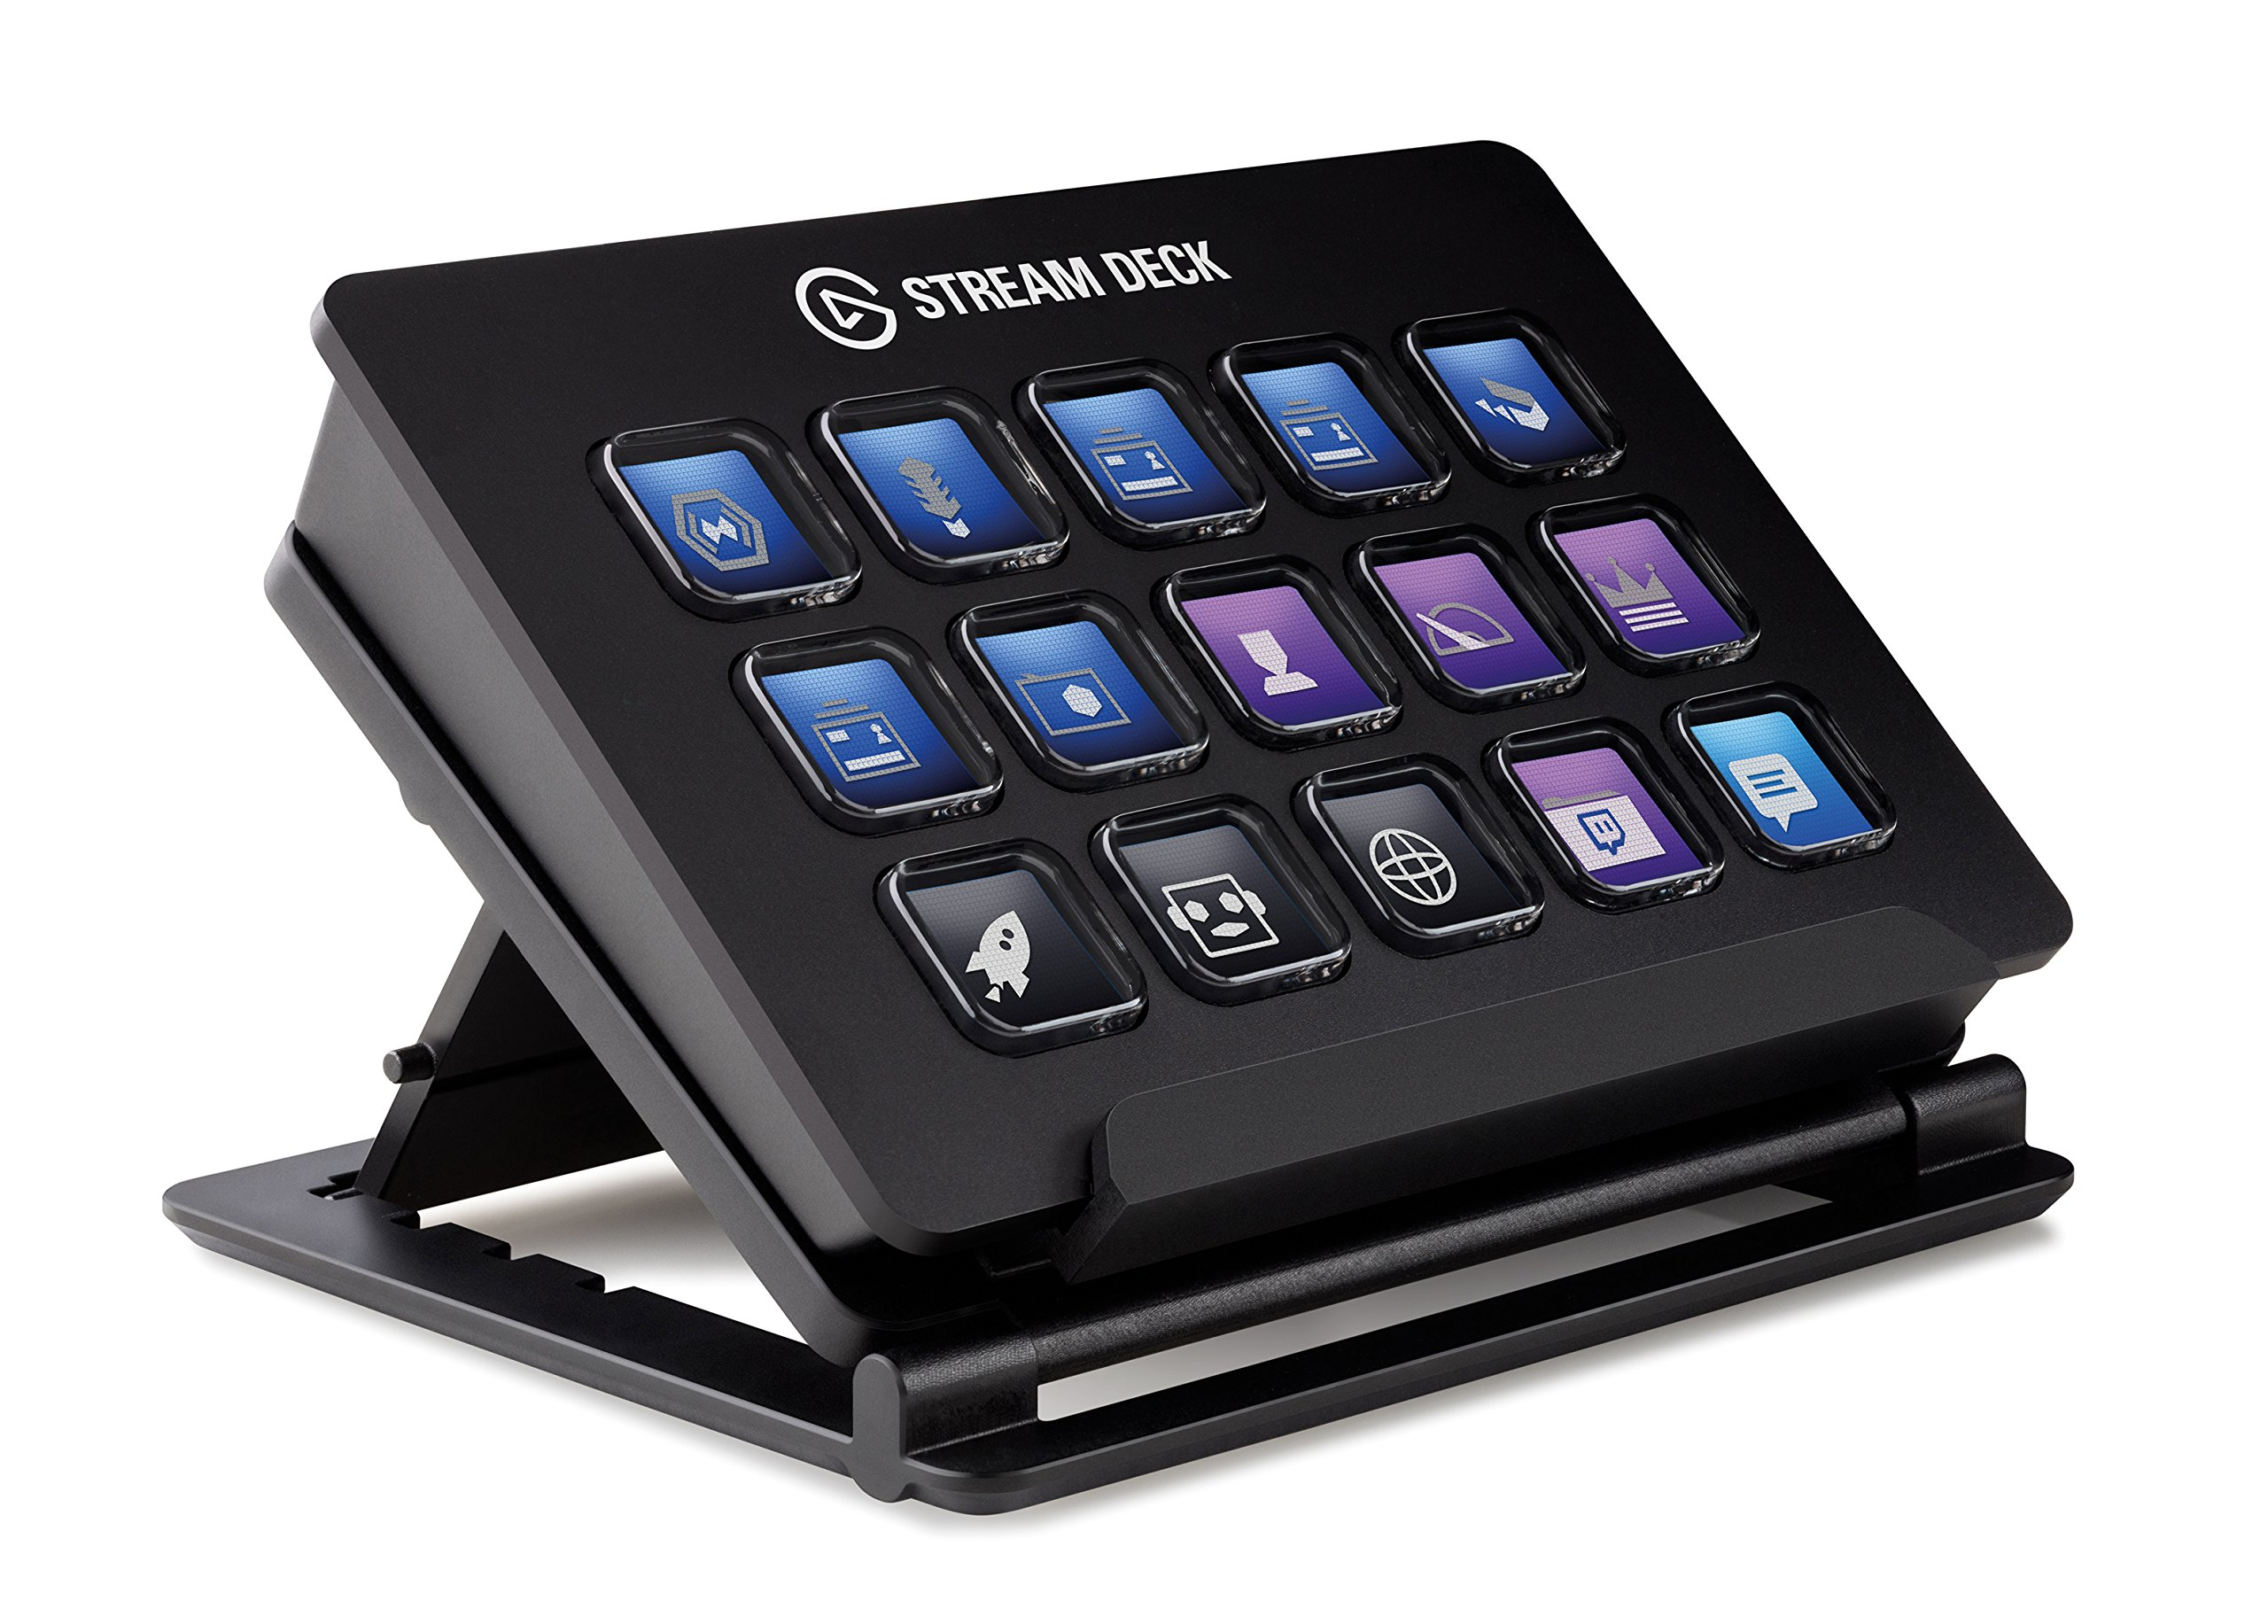 Elgato Stream Deck - Live Content Creation Controller with 15 customizable LCD keys, adjustable stand, for Windows 10 and macOS 10.11 or later by Elgato